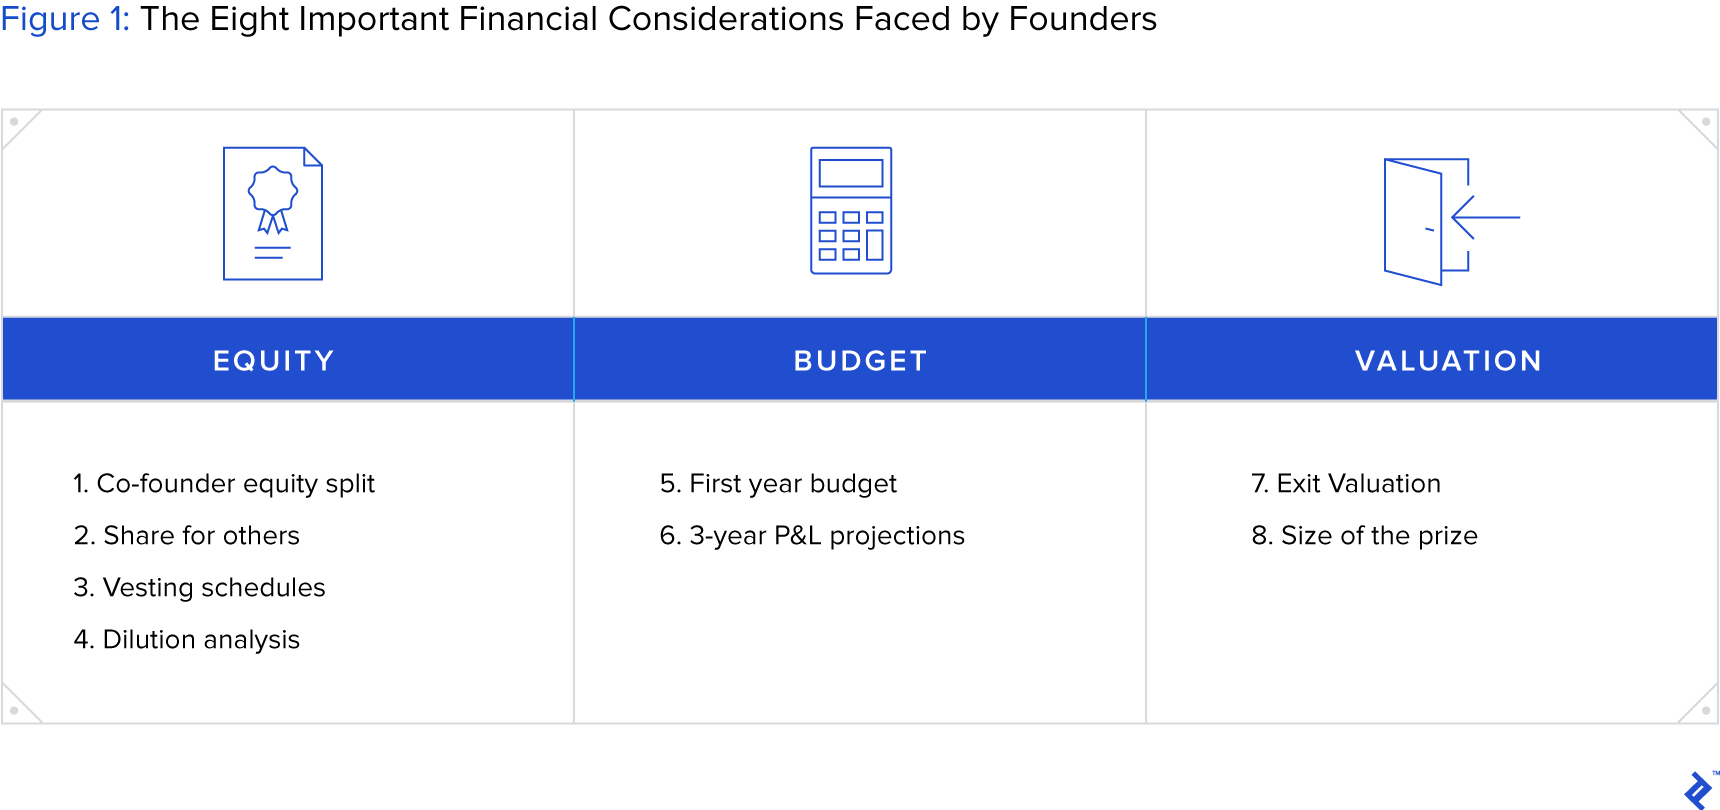 graphic representation of the eight important startup financing considerations faced by founders